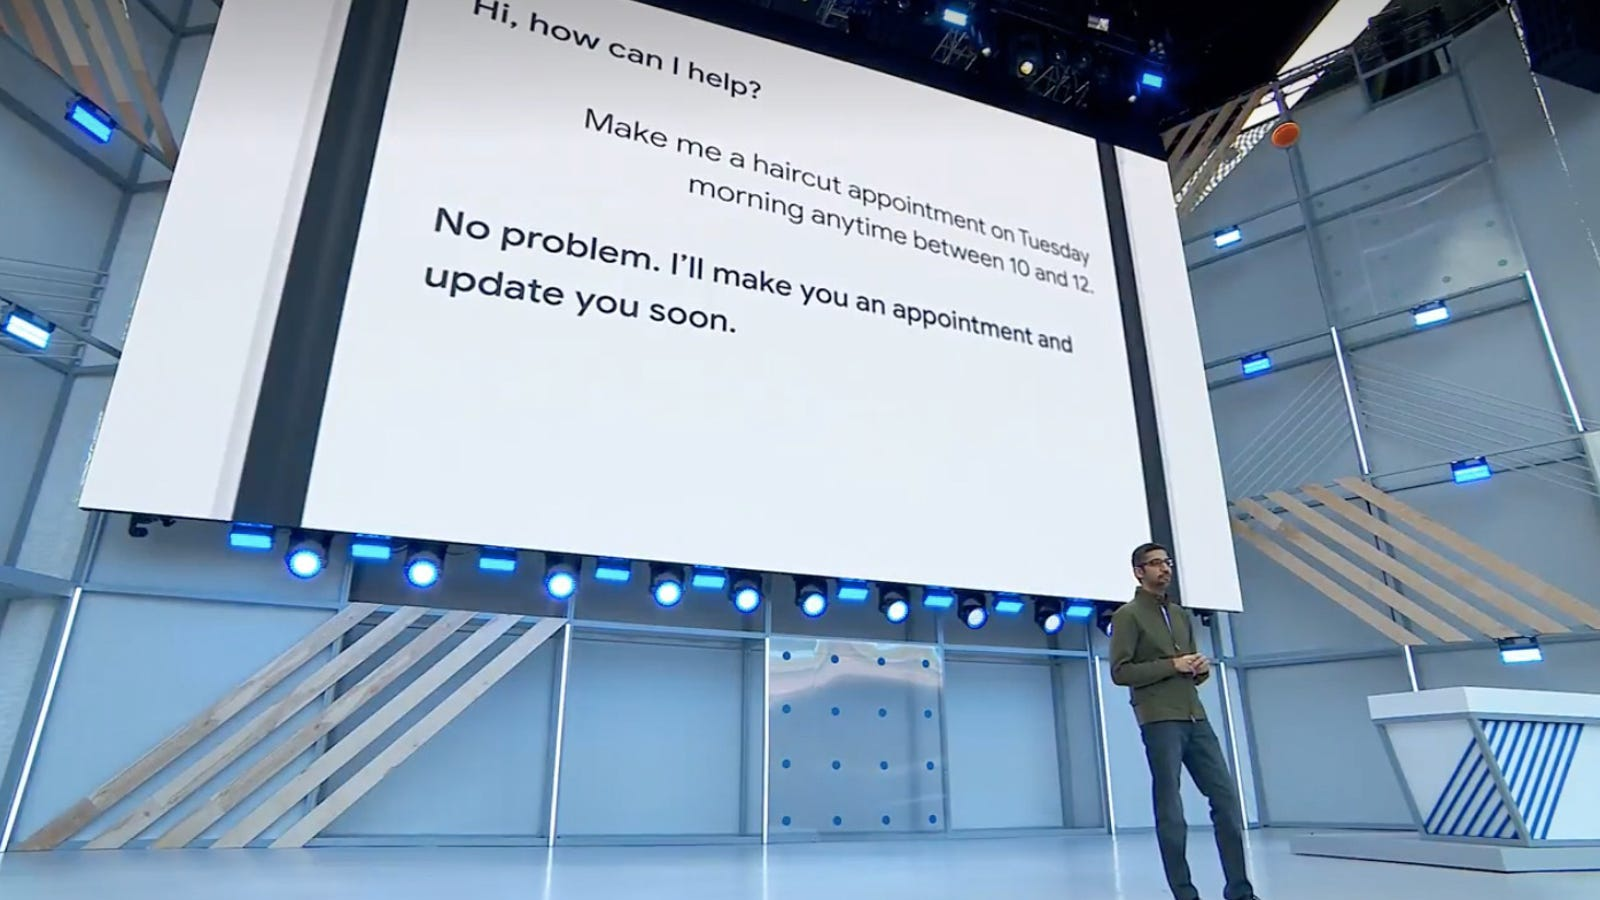 Uhh, Google Assistant Impersonating a Human on the Phone Is Scary as Hell to Me